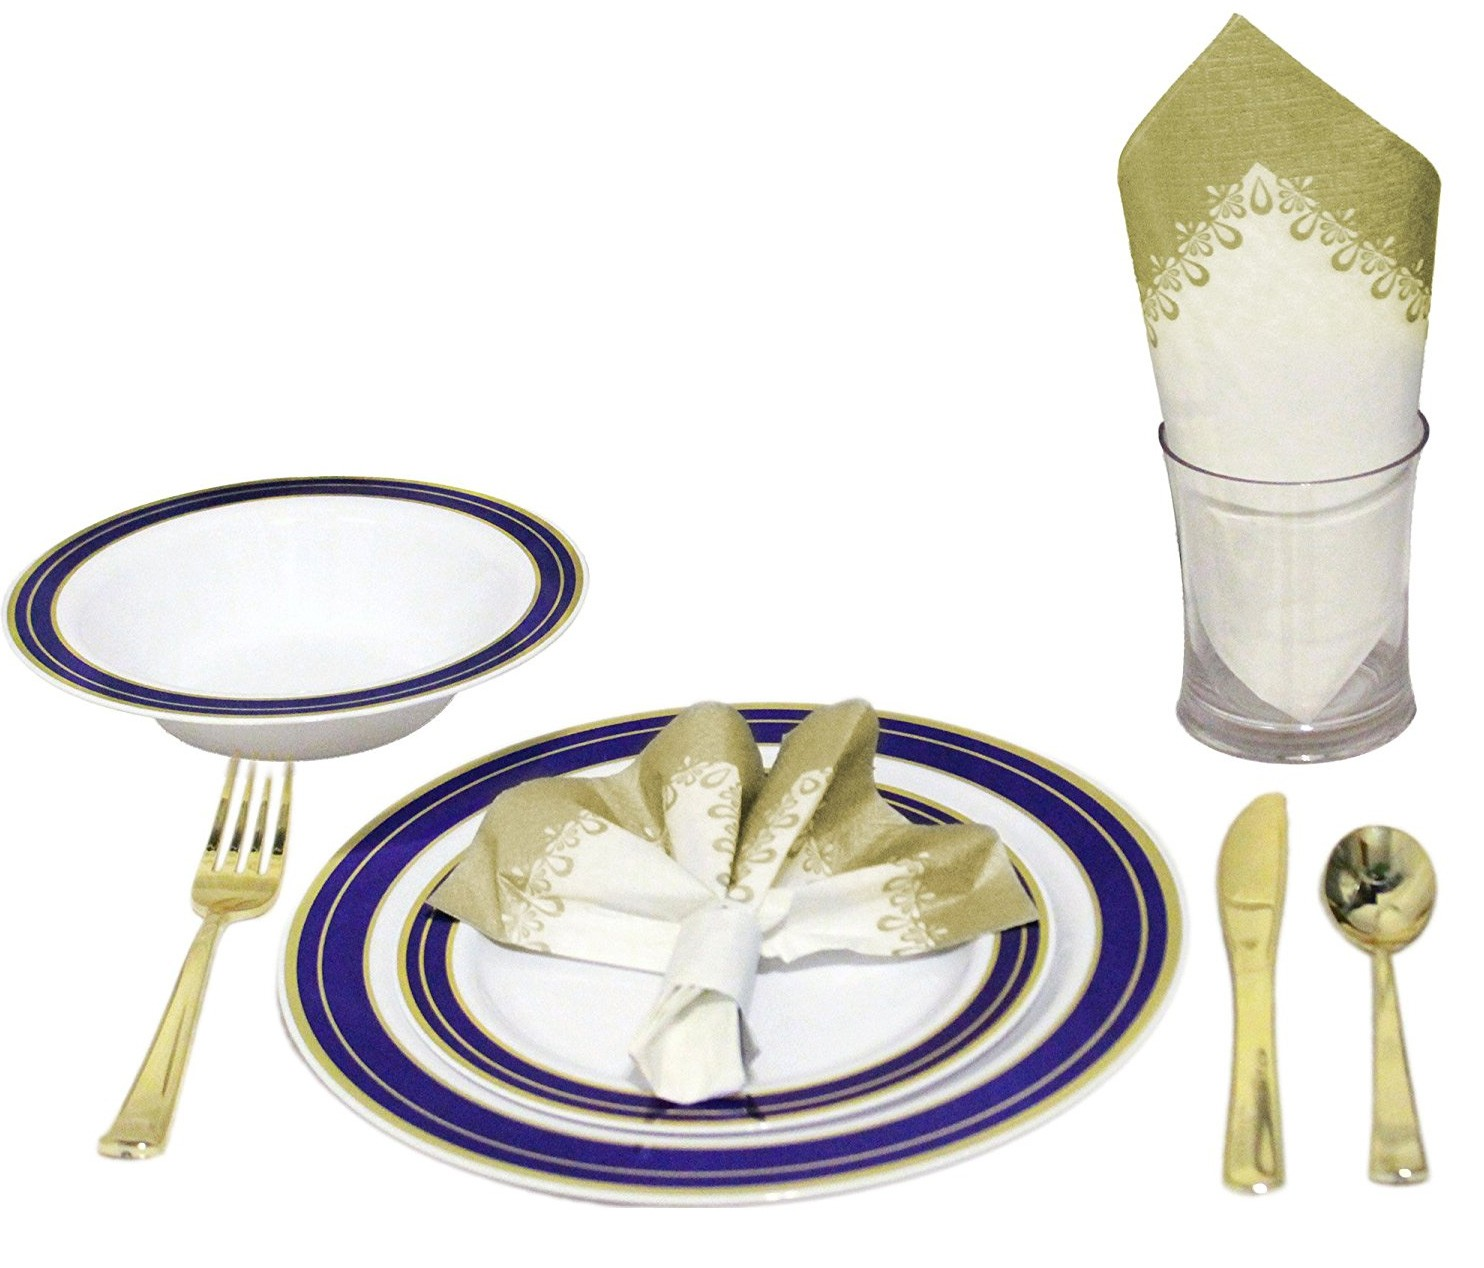 TigerChef Heavyweight Premium Plastic Dinnerware Set with Gold and Blue Cobalt Trim - Service for 20  sc 1 st  TigerChef : premium plastic dinnerware - pezcame.com